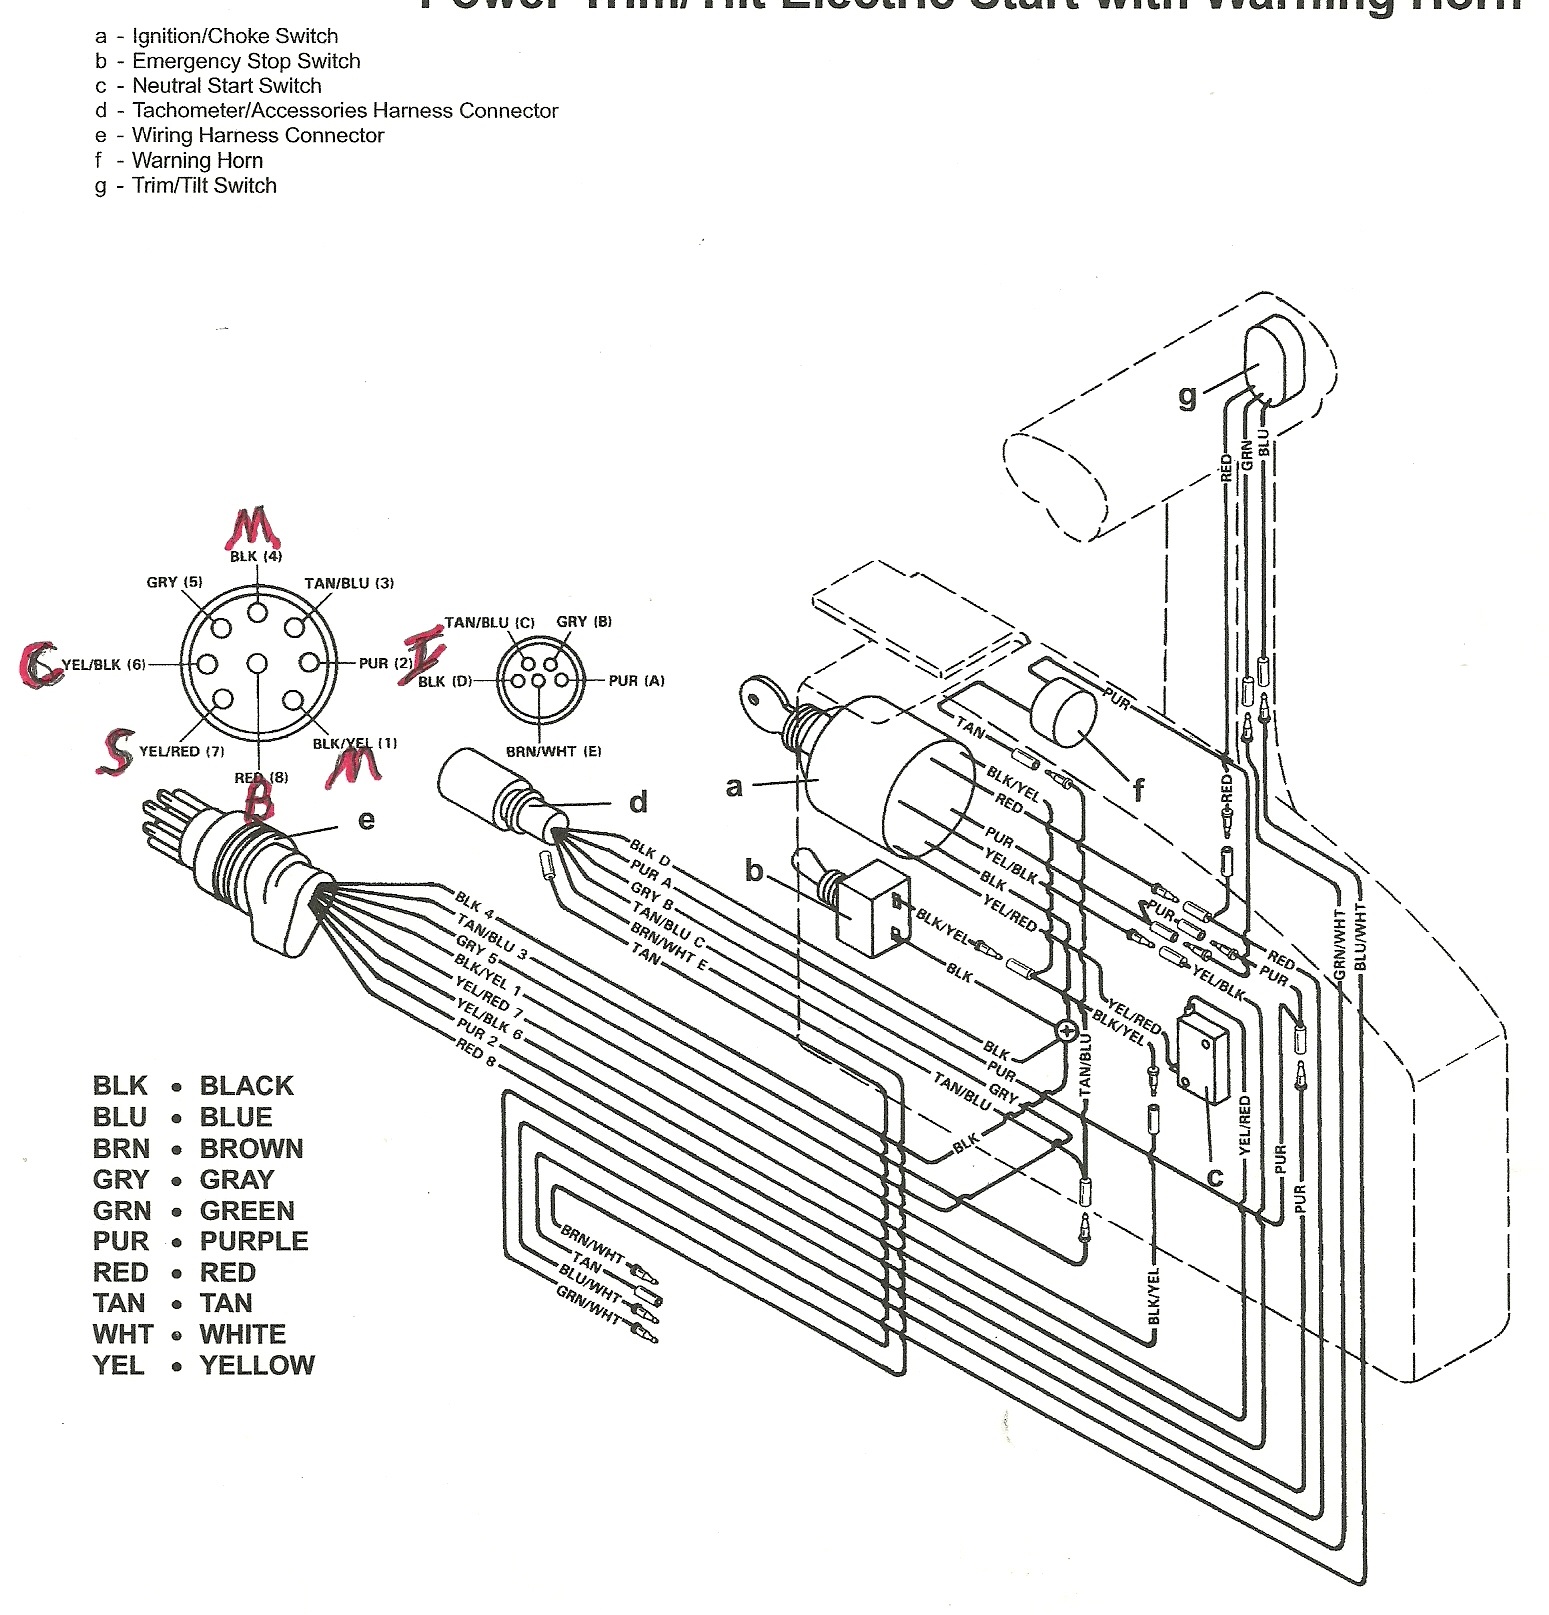 2011-06-16_135700_scan0008 F Wiring Diagram on